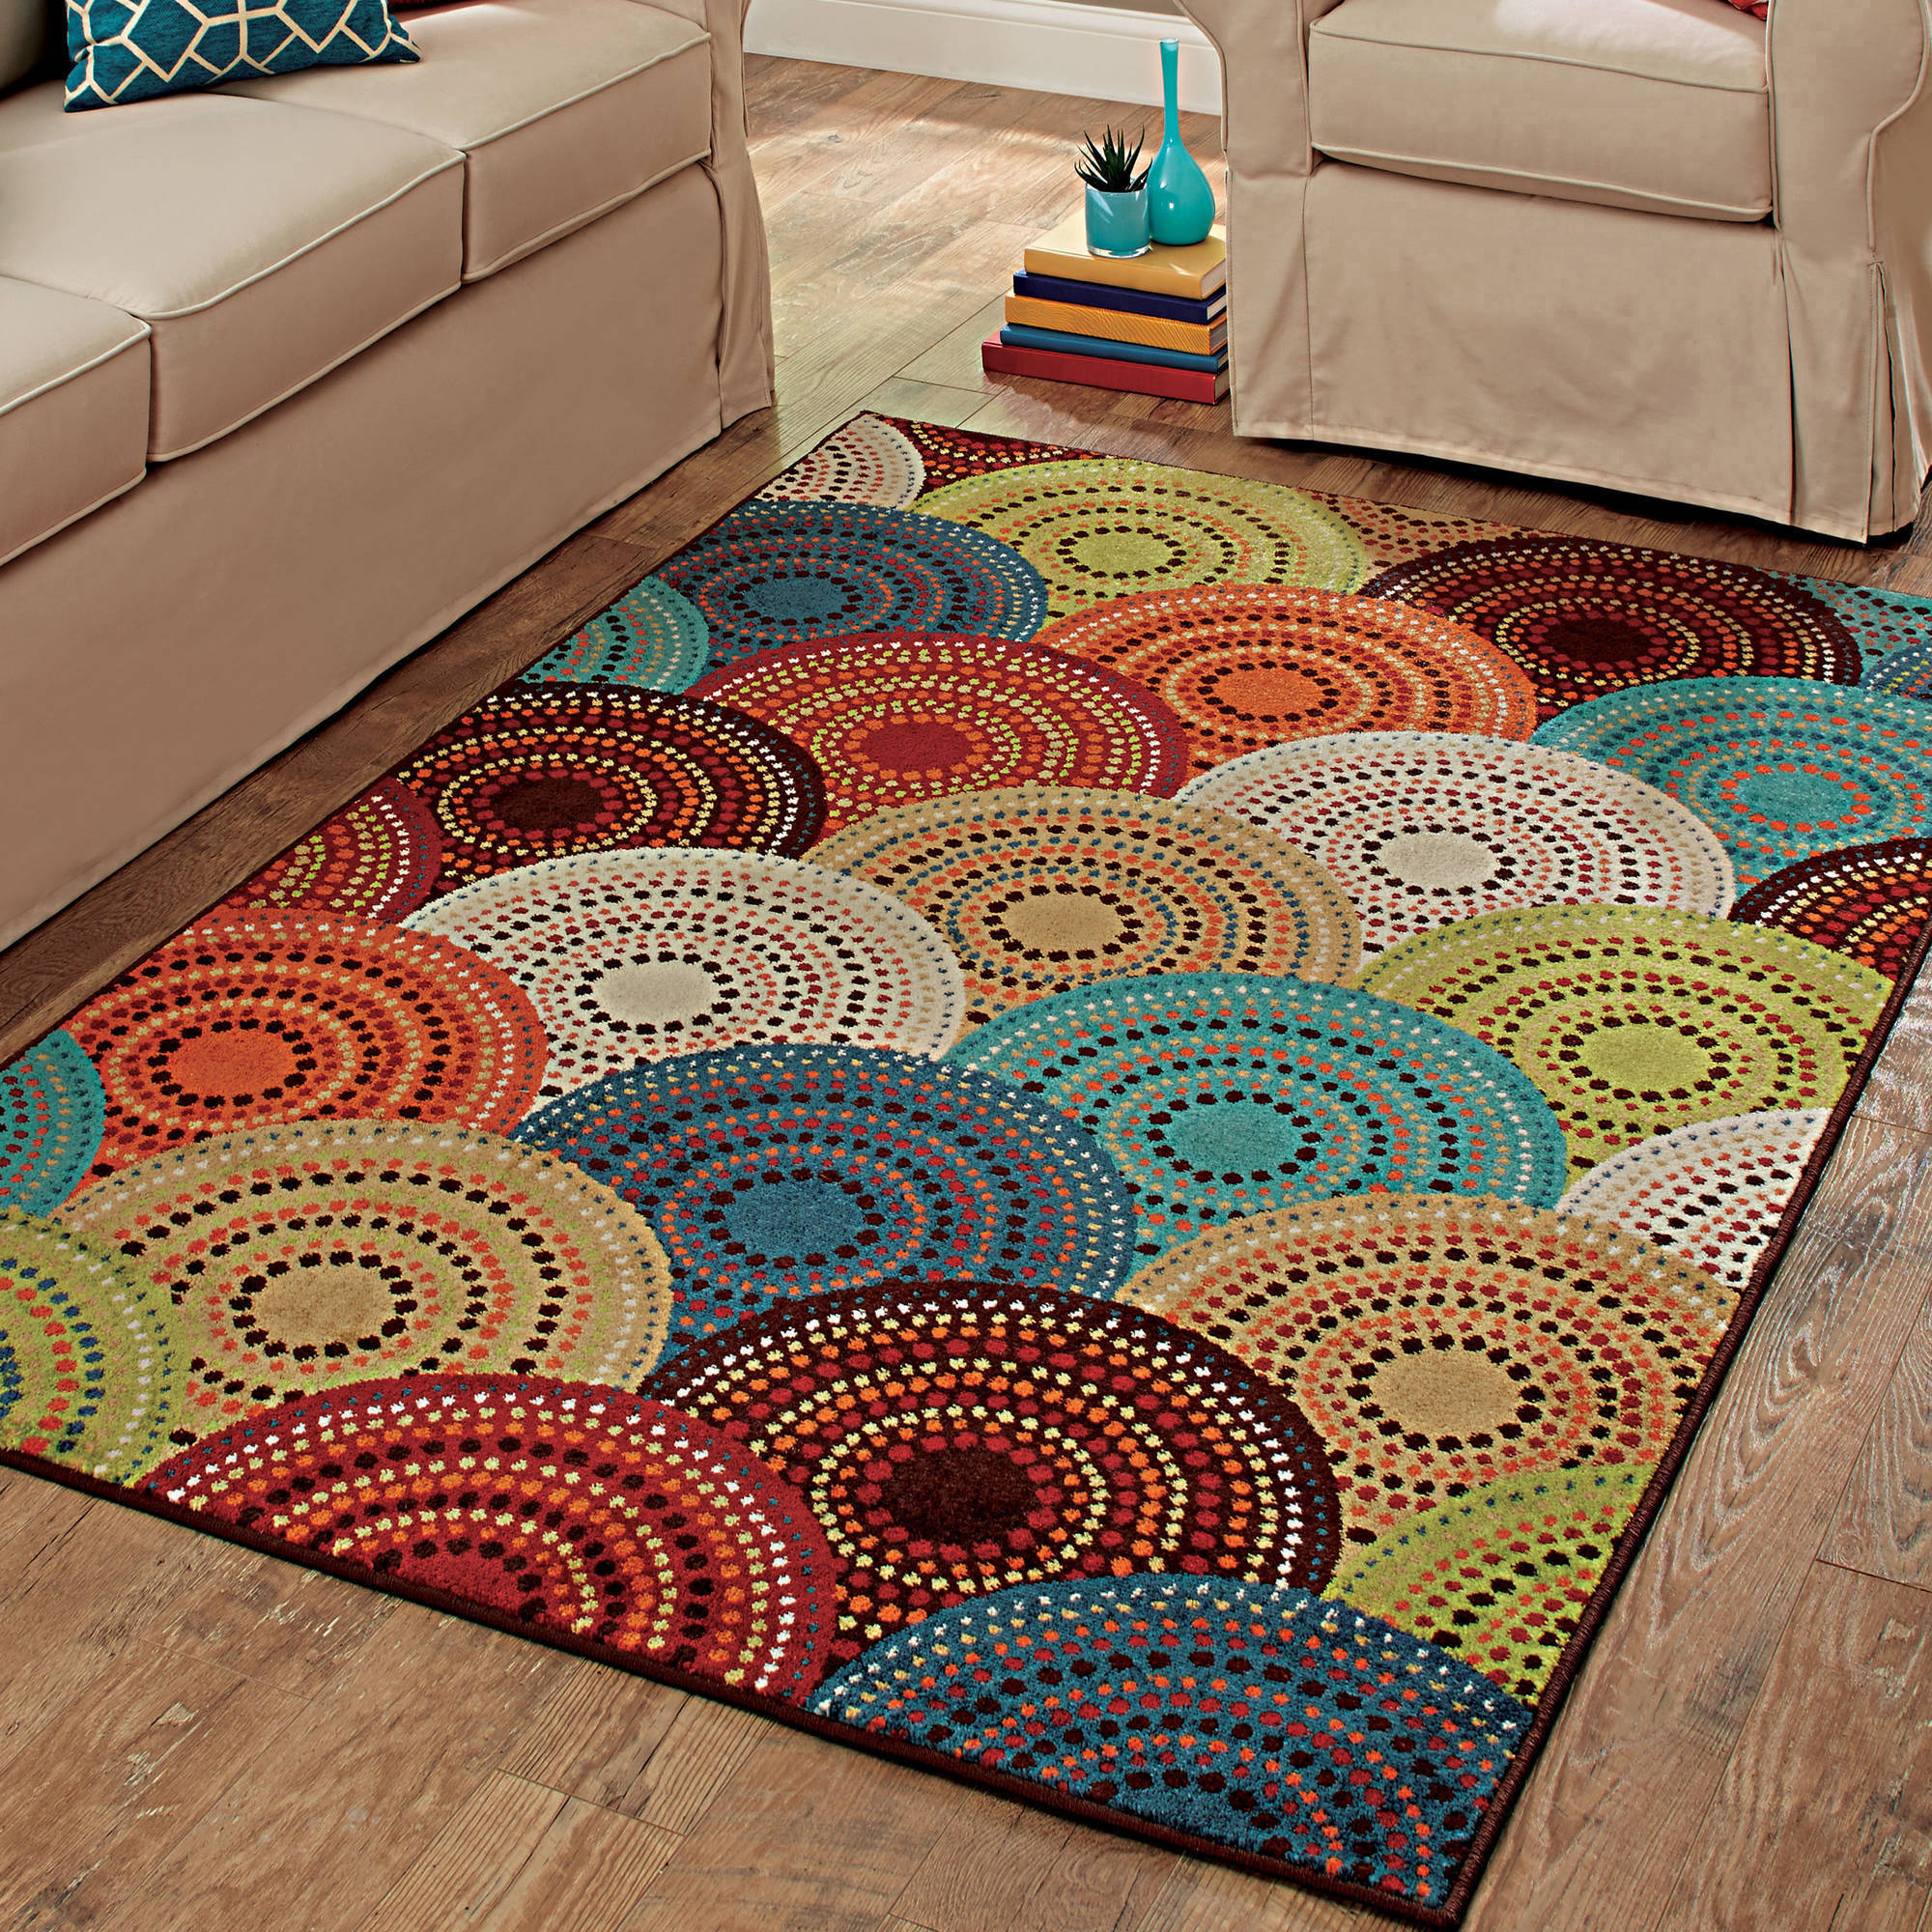 Better Homes and Gardens Bright Dotted Circles Area Rug and Runner